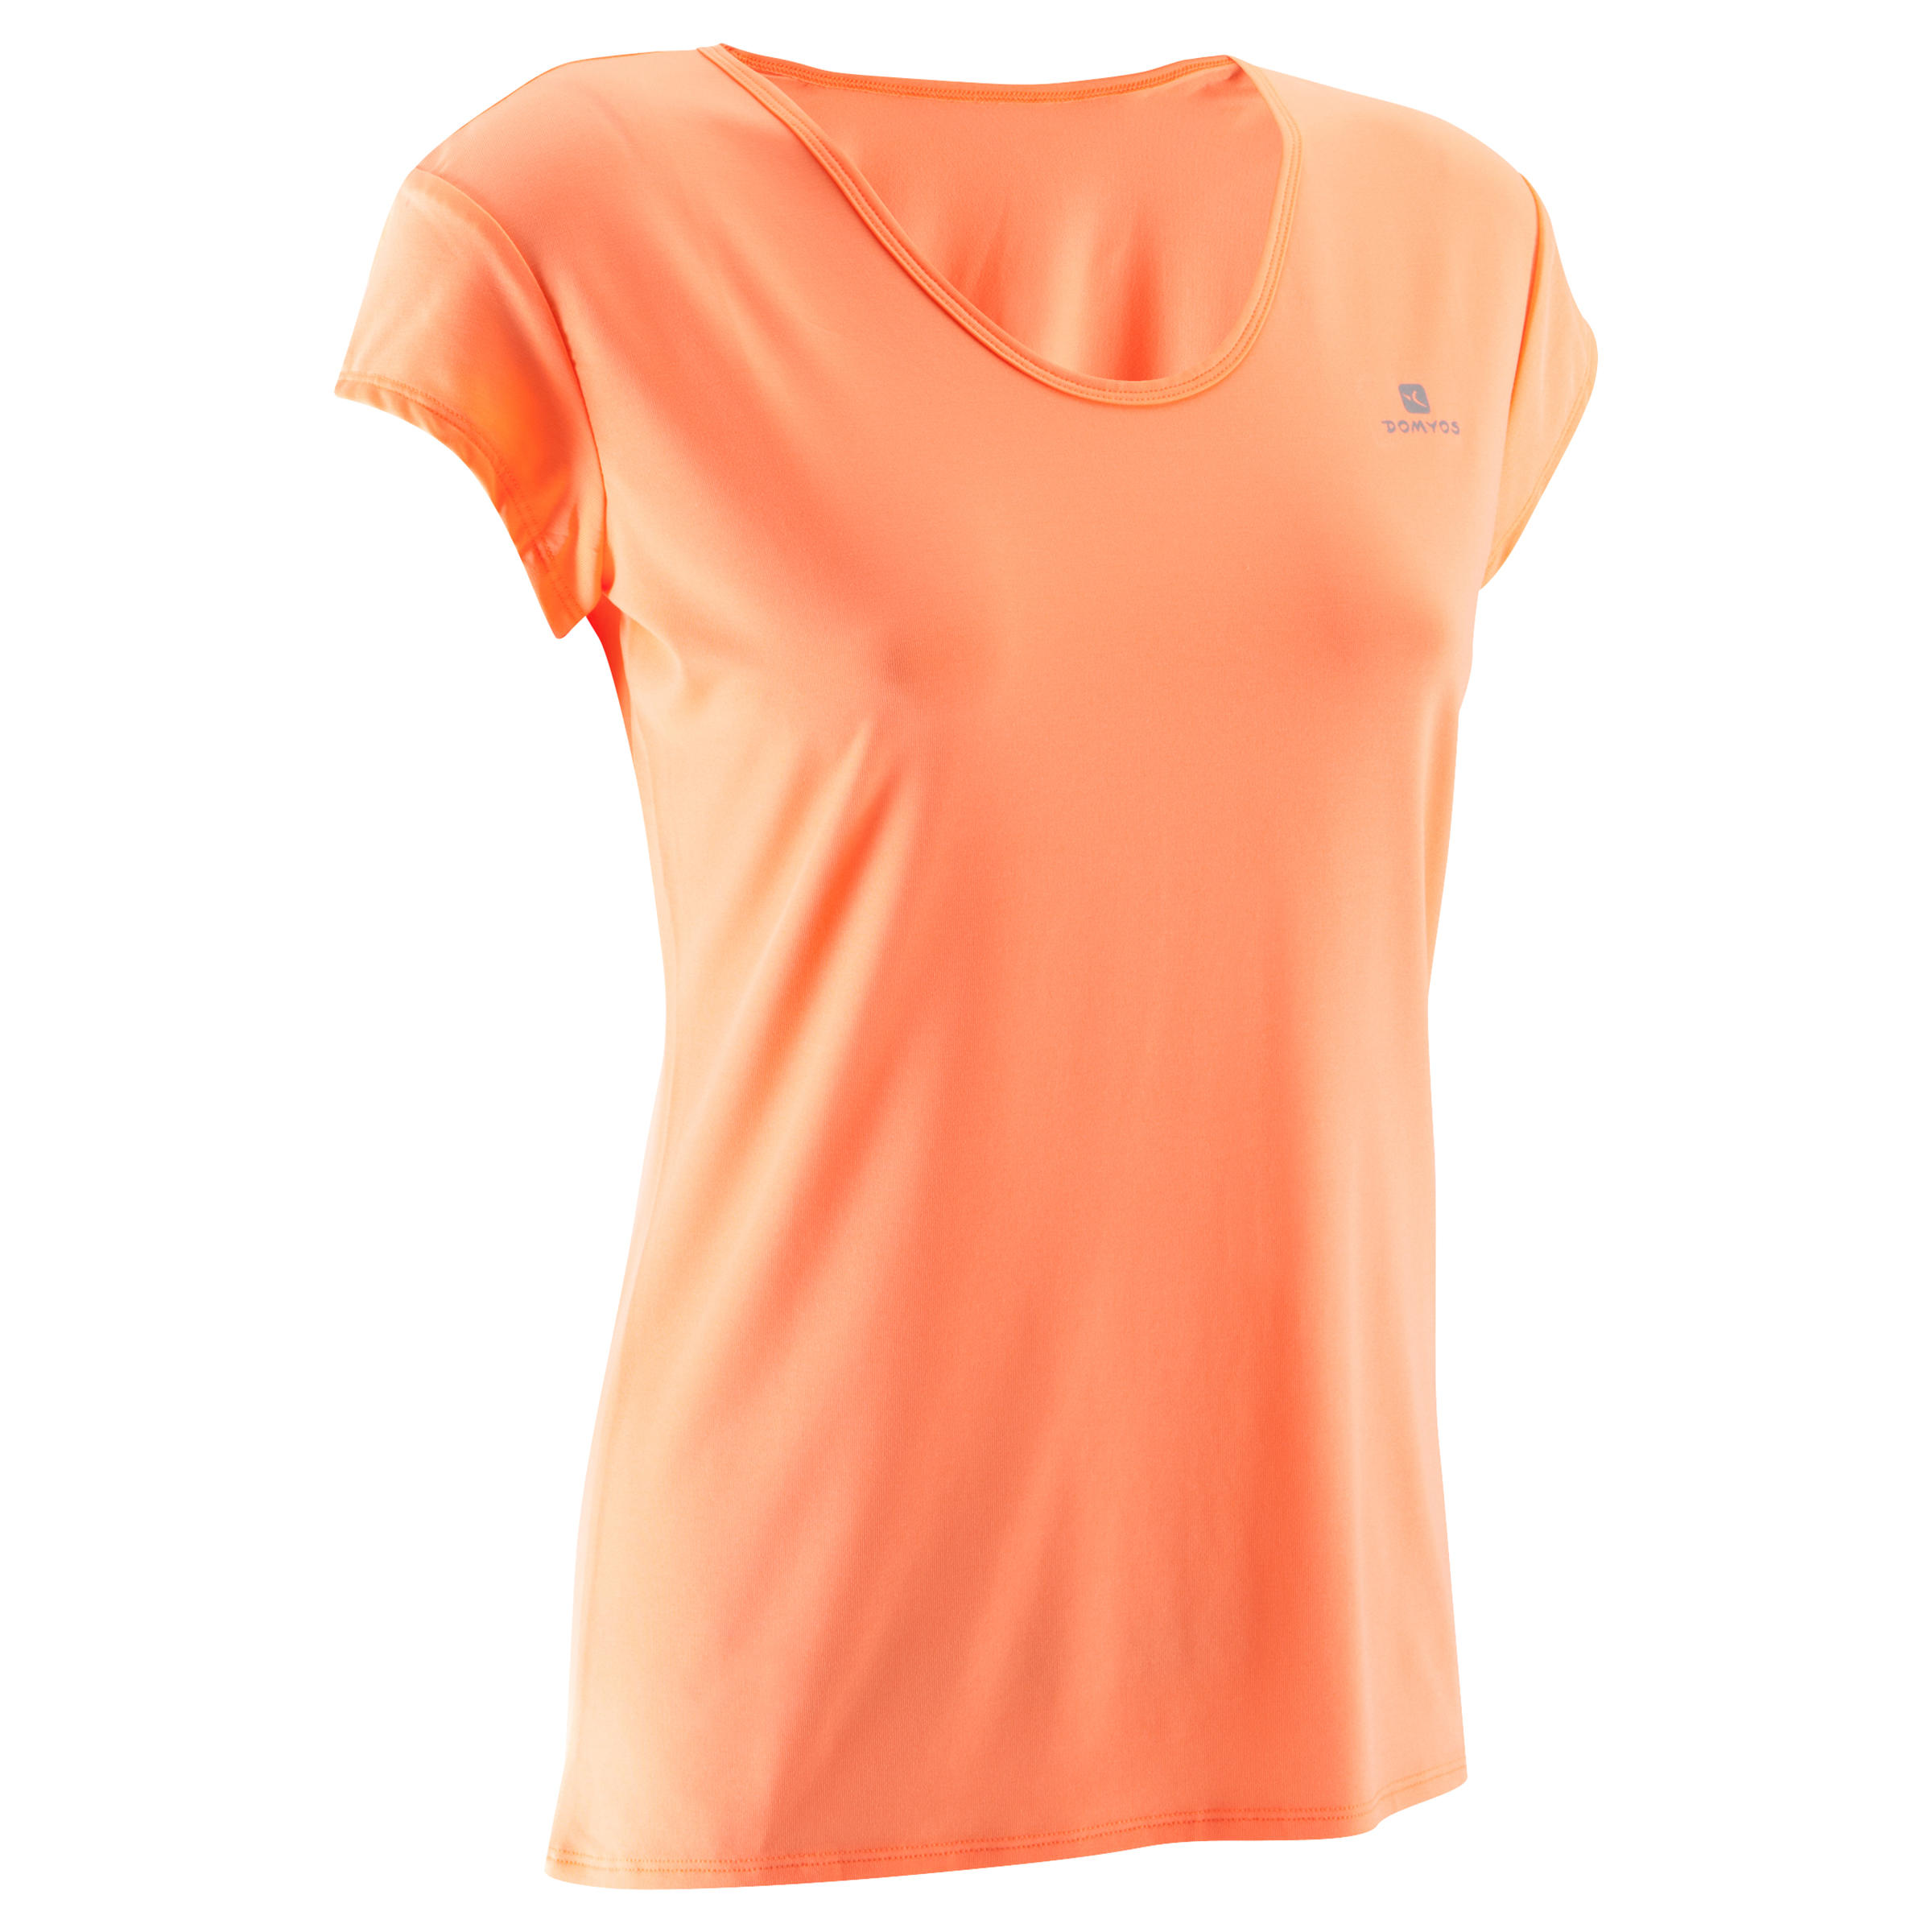 Domyos T-shirt basic fitness cardio Energy dames - WOOSE.NL - Voor jou ...